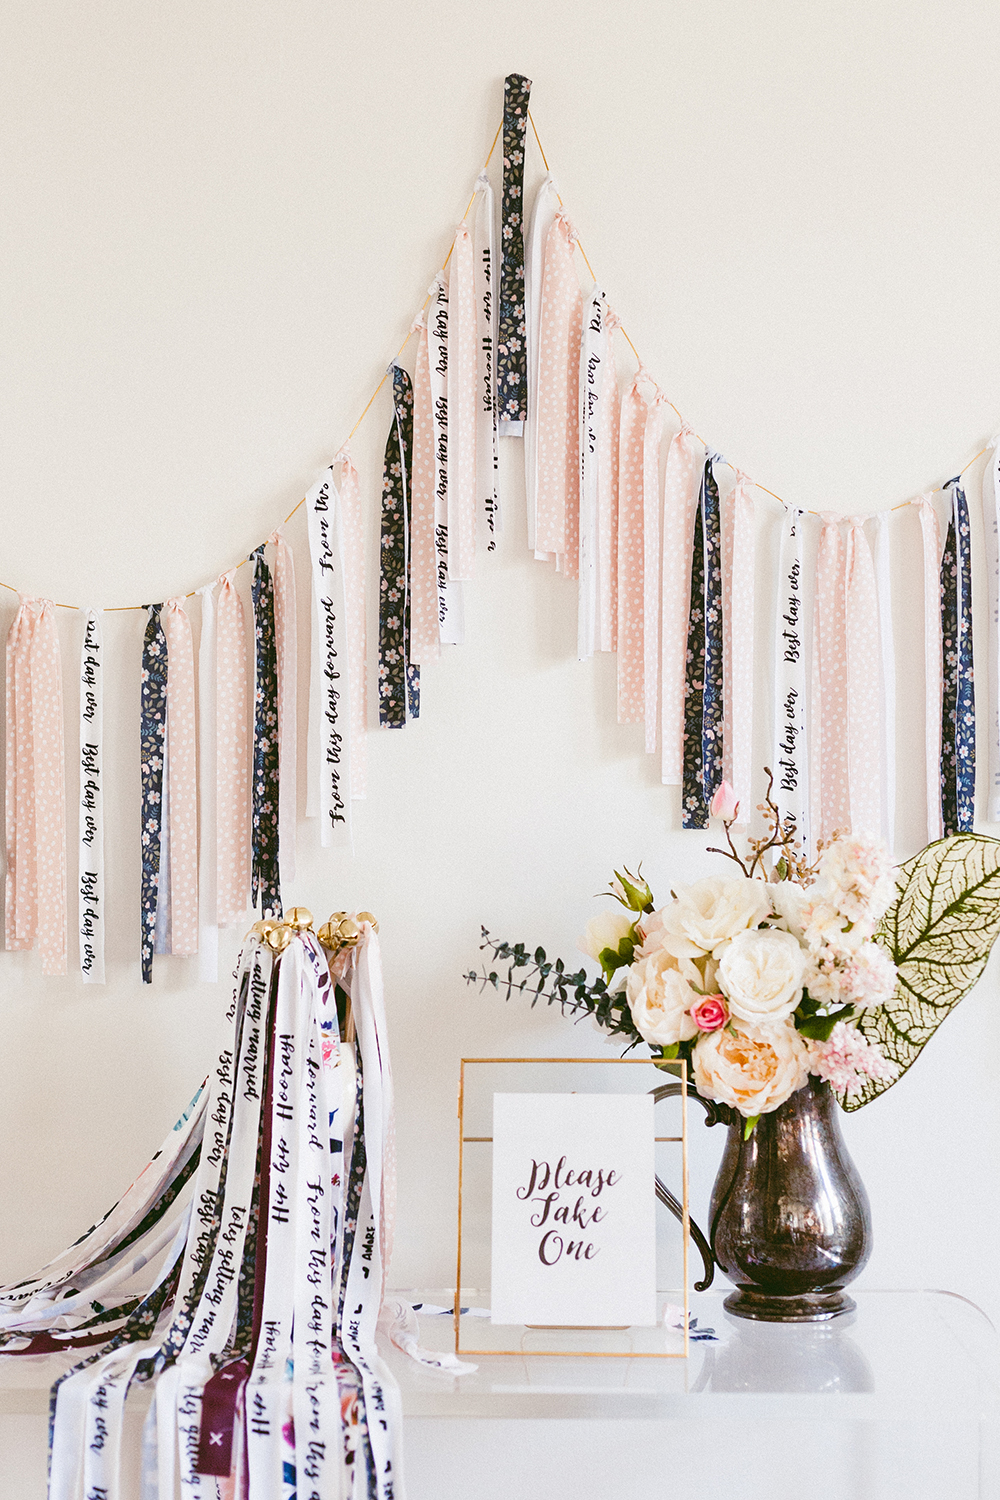 This DIY Wedding Send Off is Venue-Approved! | Spoonflower Blog